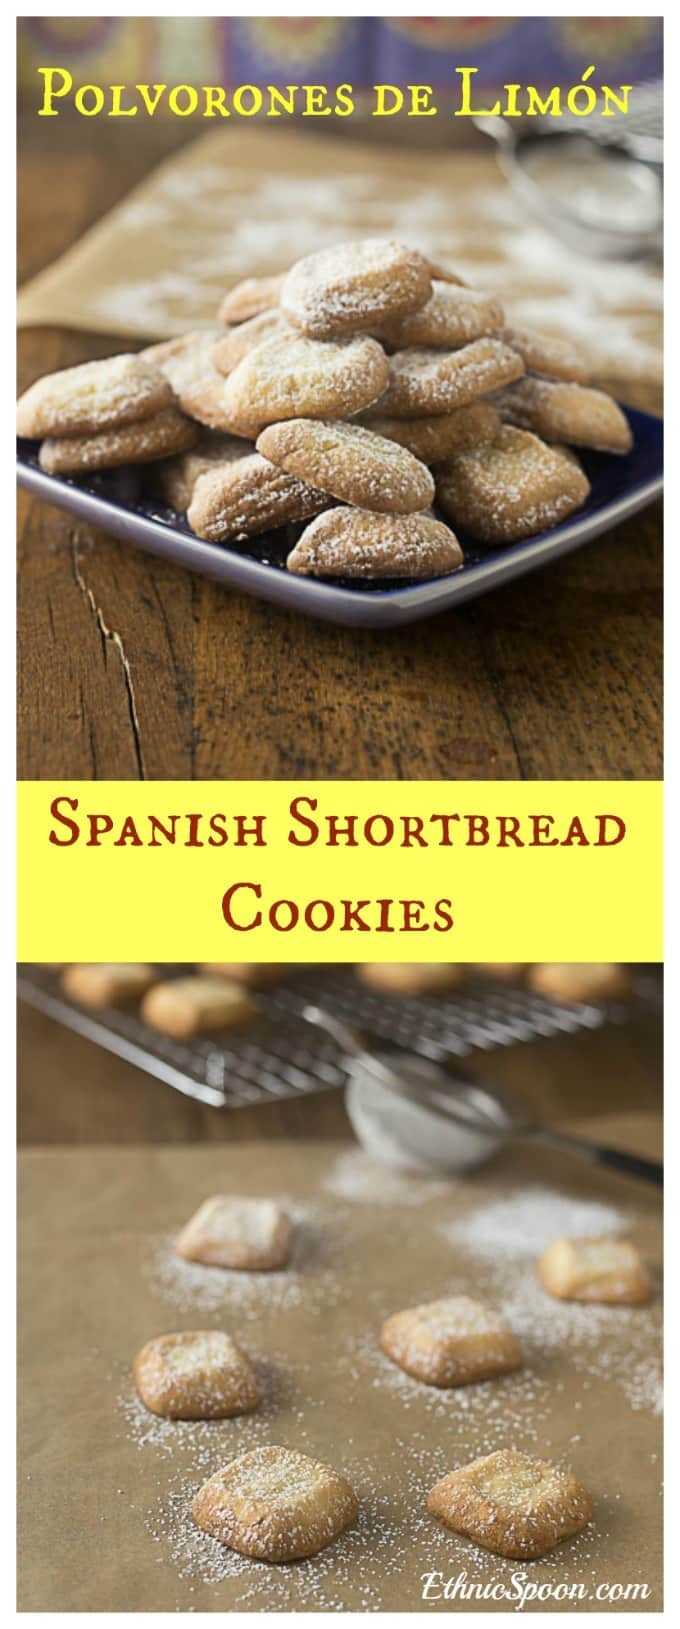 Spanish Christmas cookies: Polvorones de Limón. You will love shortbread with a hint of lime! A really simple unique cookie for the holidays. | ethnicspoon.com #spanishshortbread #lemonshortbread #spanishcookies